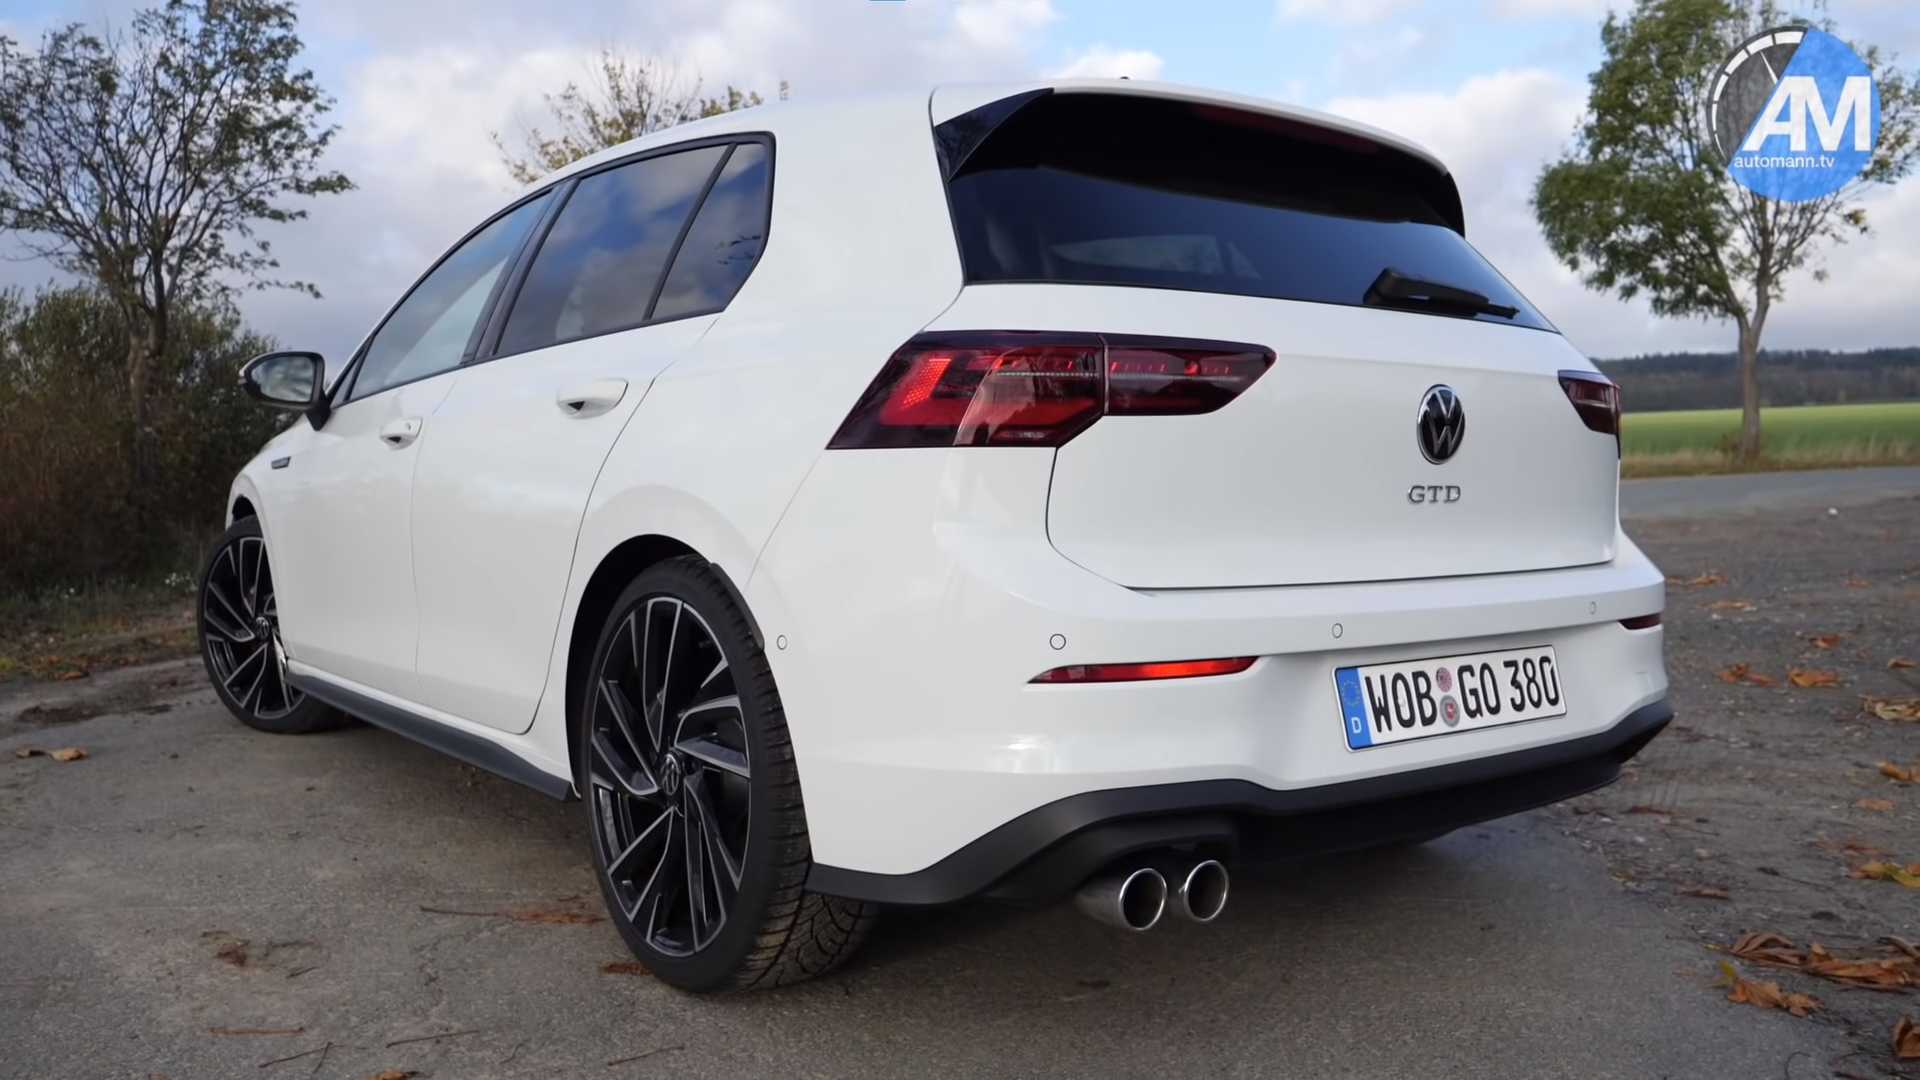 New 2020 Vw Golf Gtd Everything You Need To Know Car Magazine